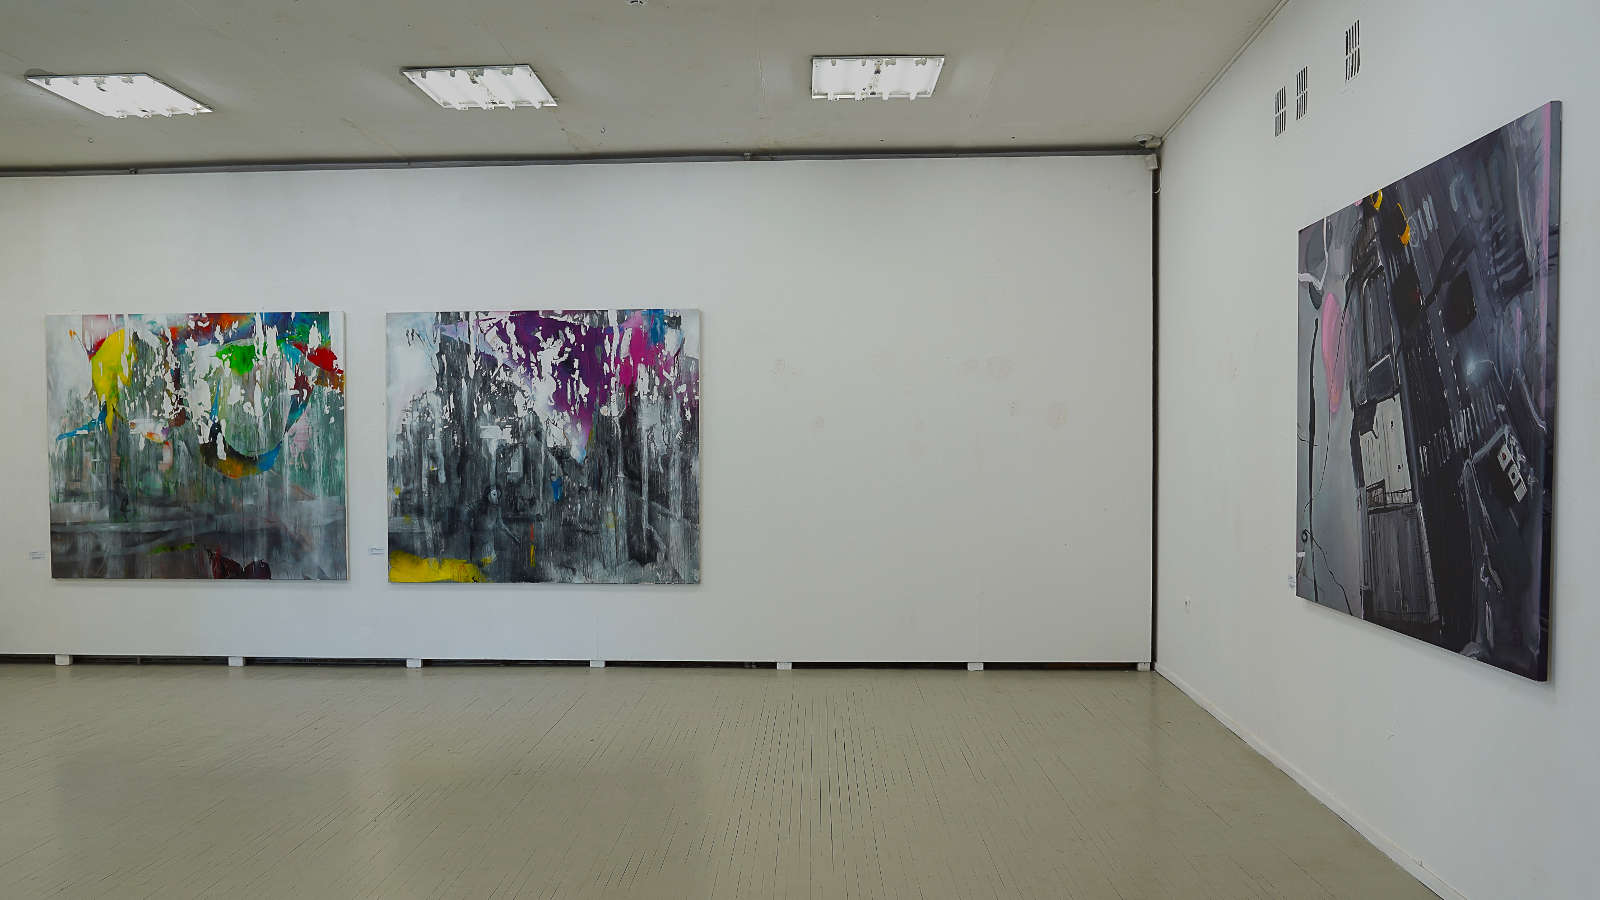 Neringa Kriziute - painter - about, exhibitions, gallery